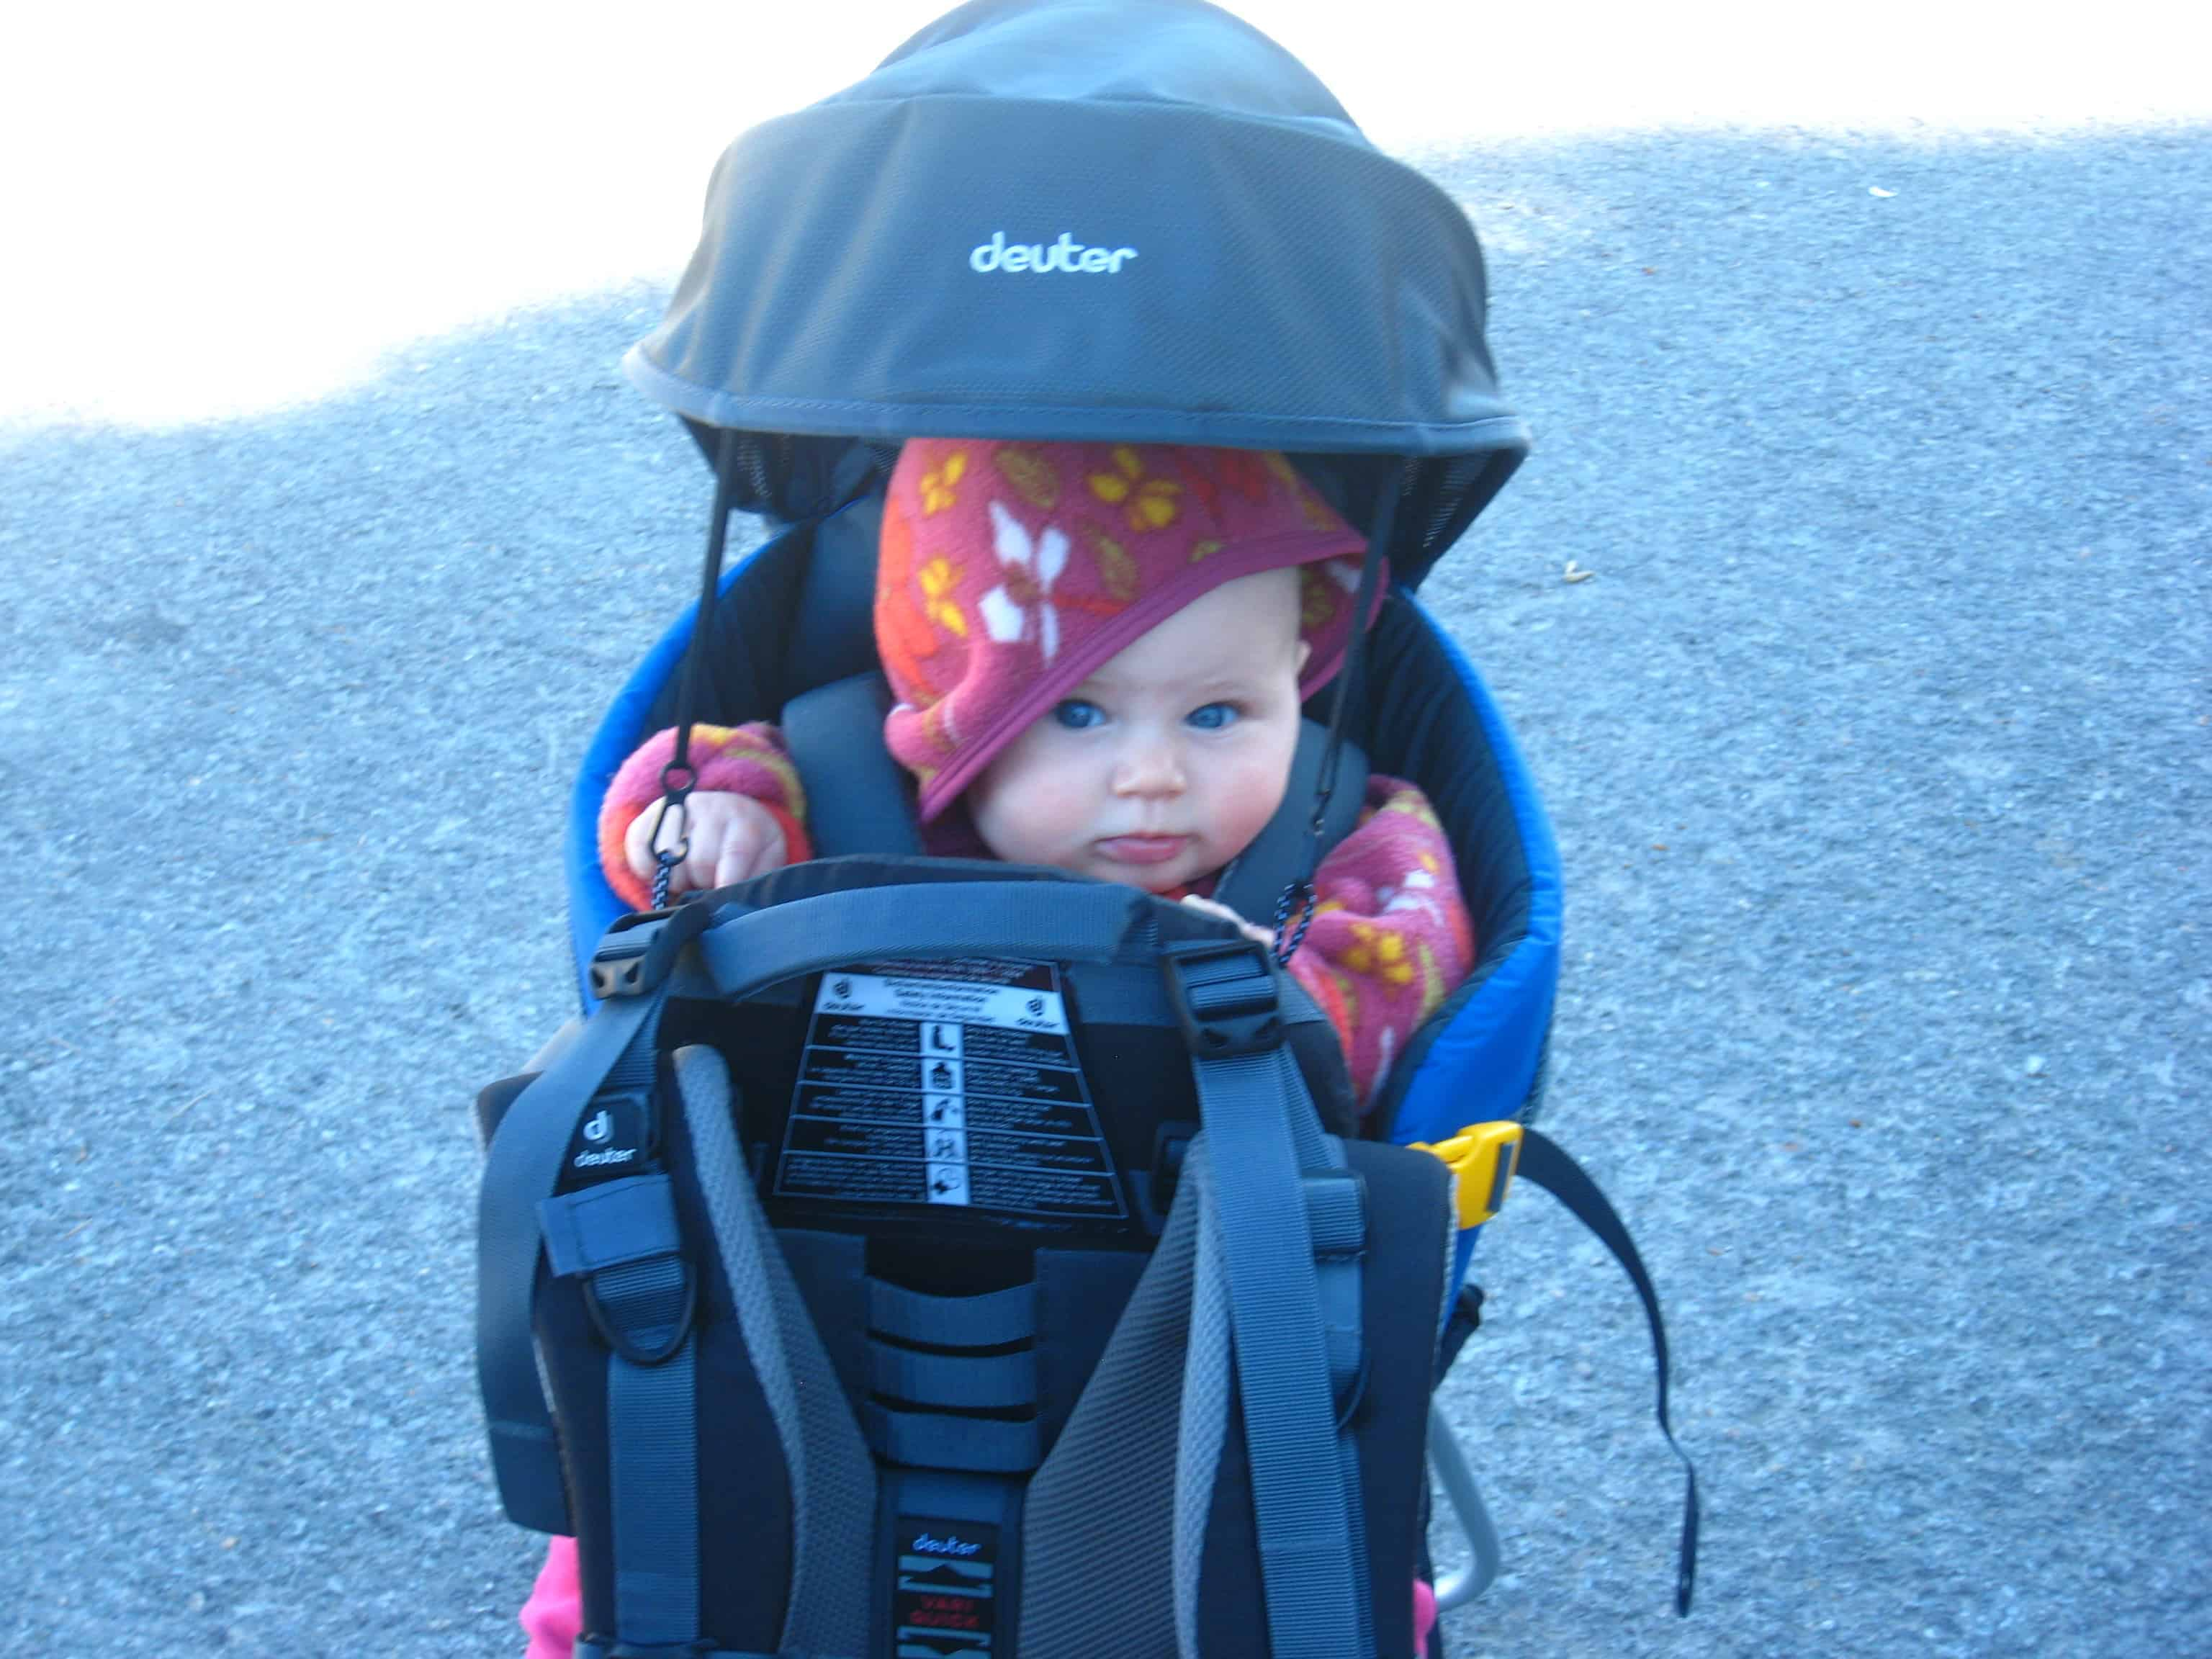 deuter kid comfort 1 vs 2 images